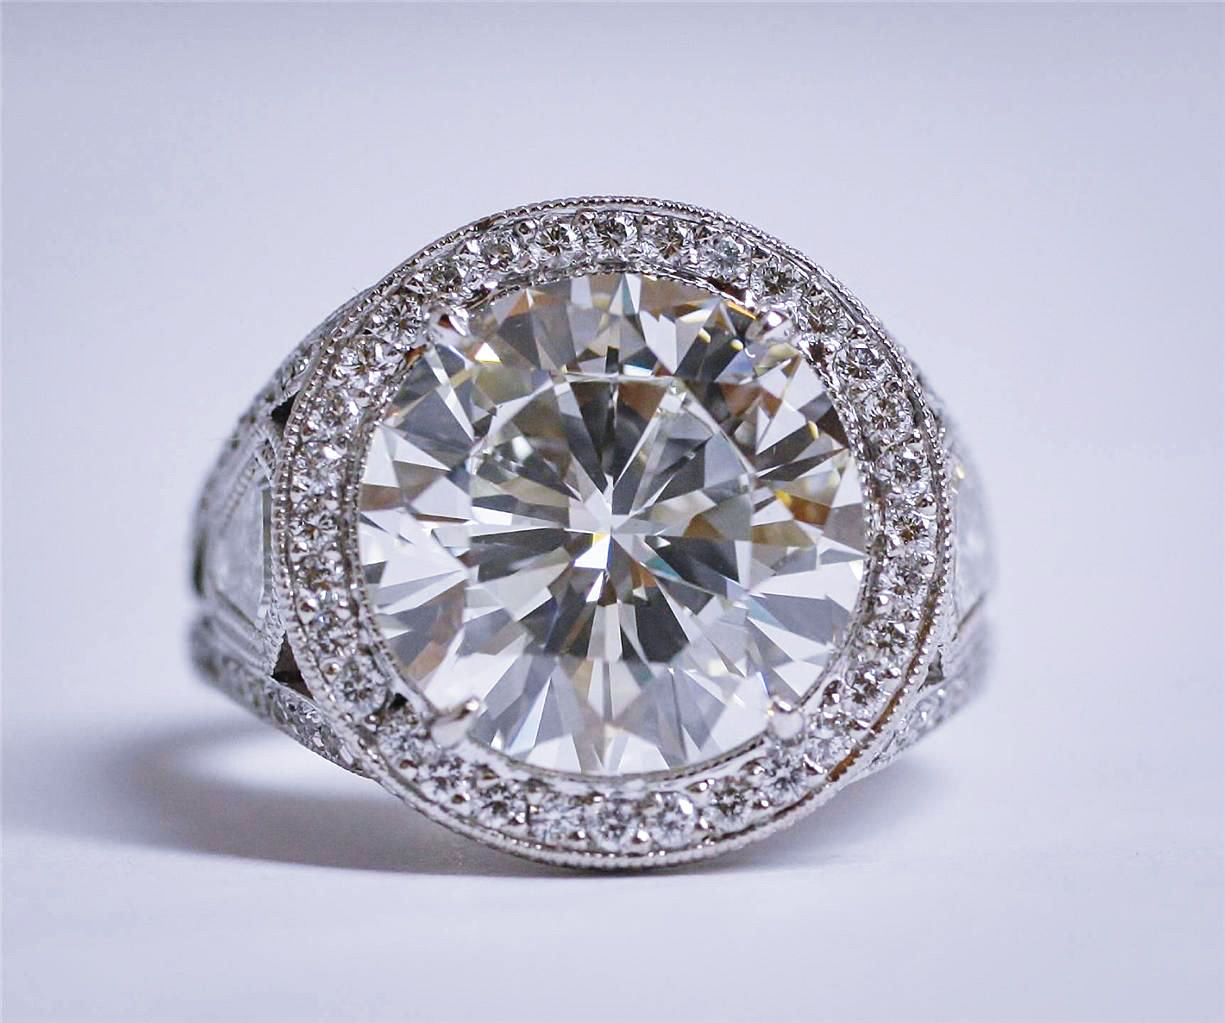 5 Carat Diamond Ring